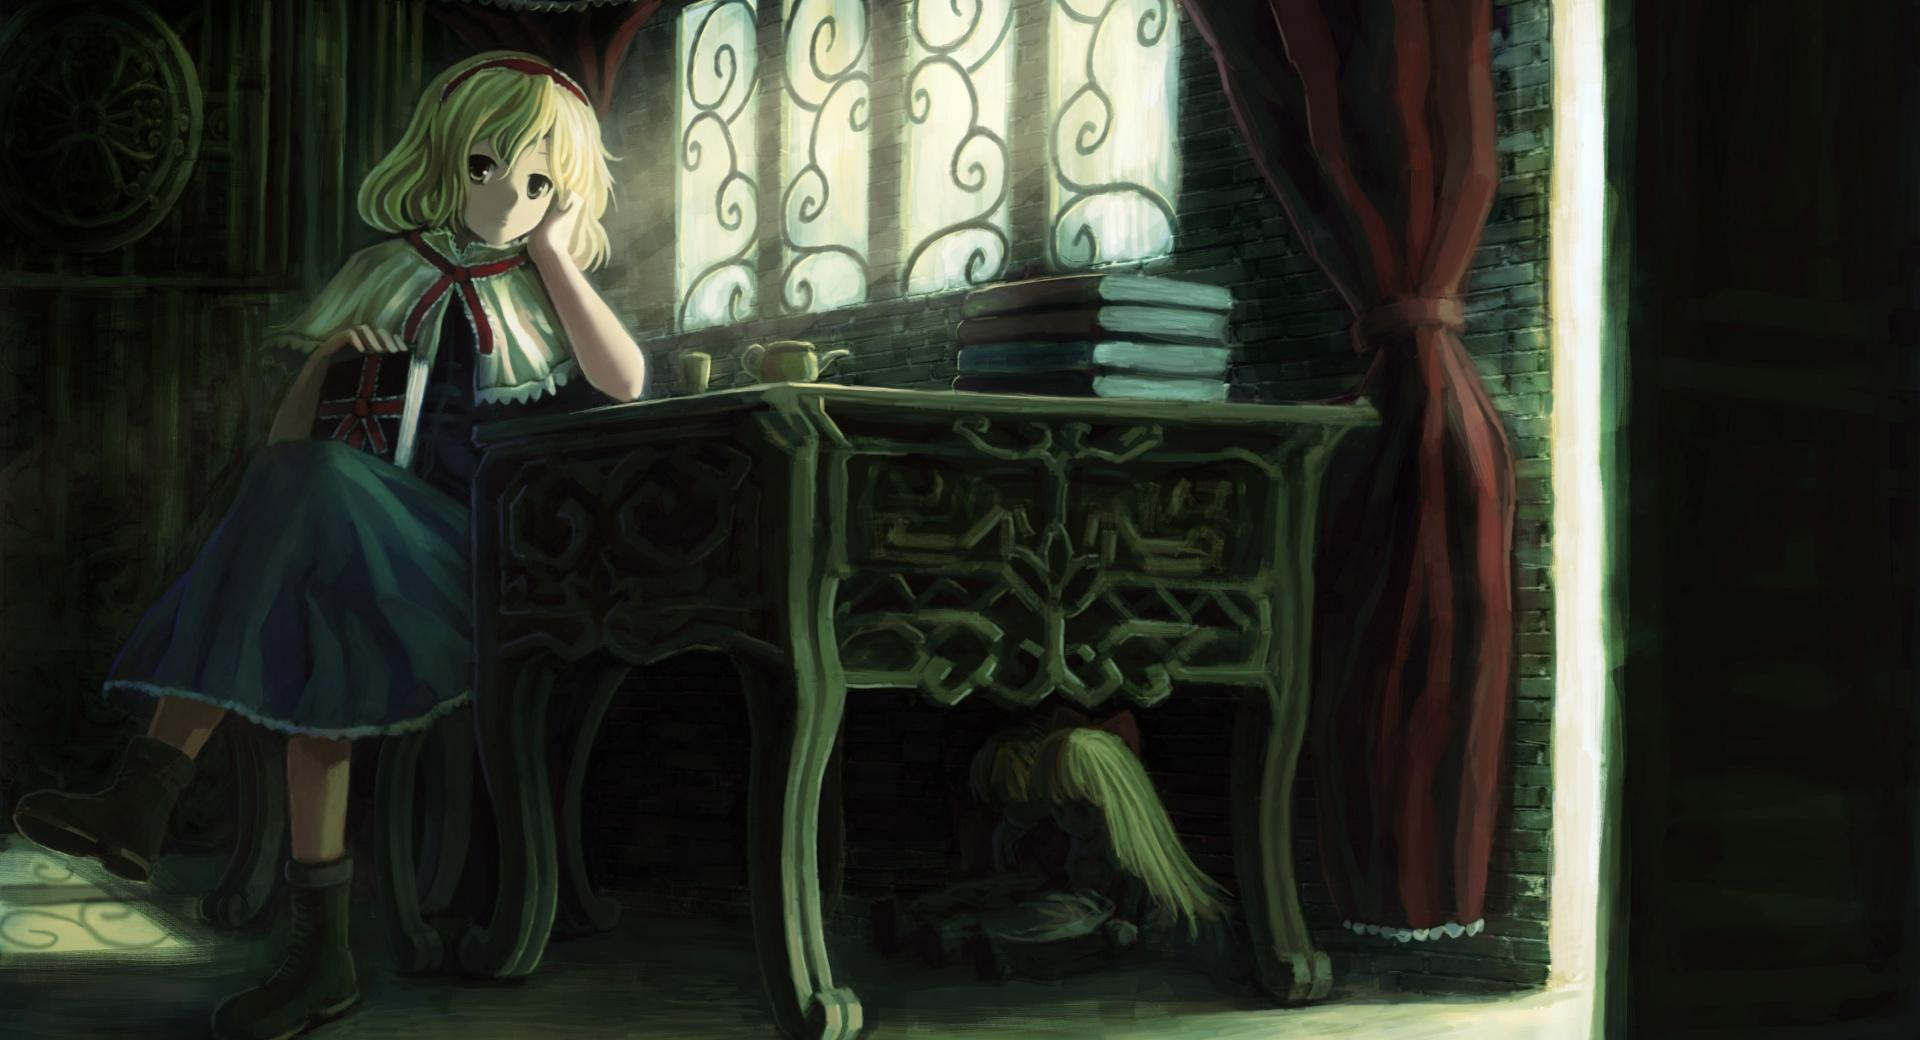 Girl With Books wallpapers HD quality